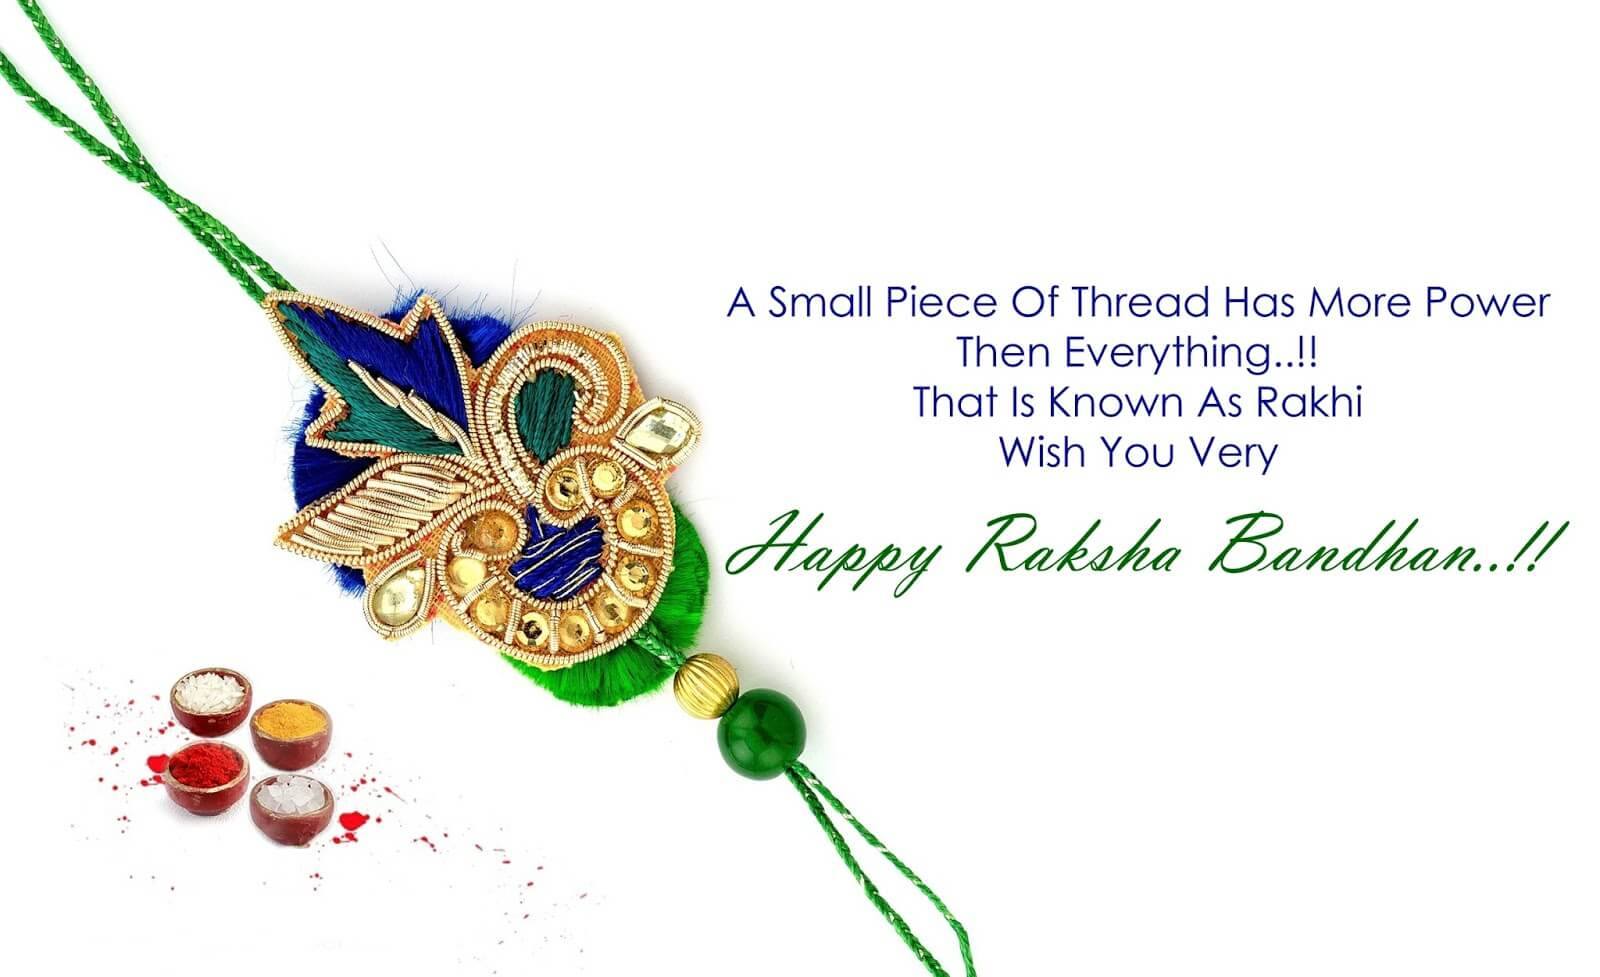 Happy Raksha Bandhan images quotes in english